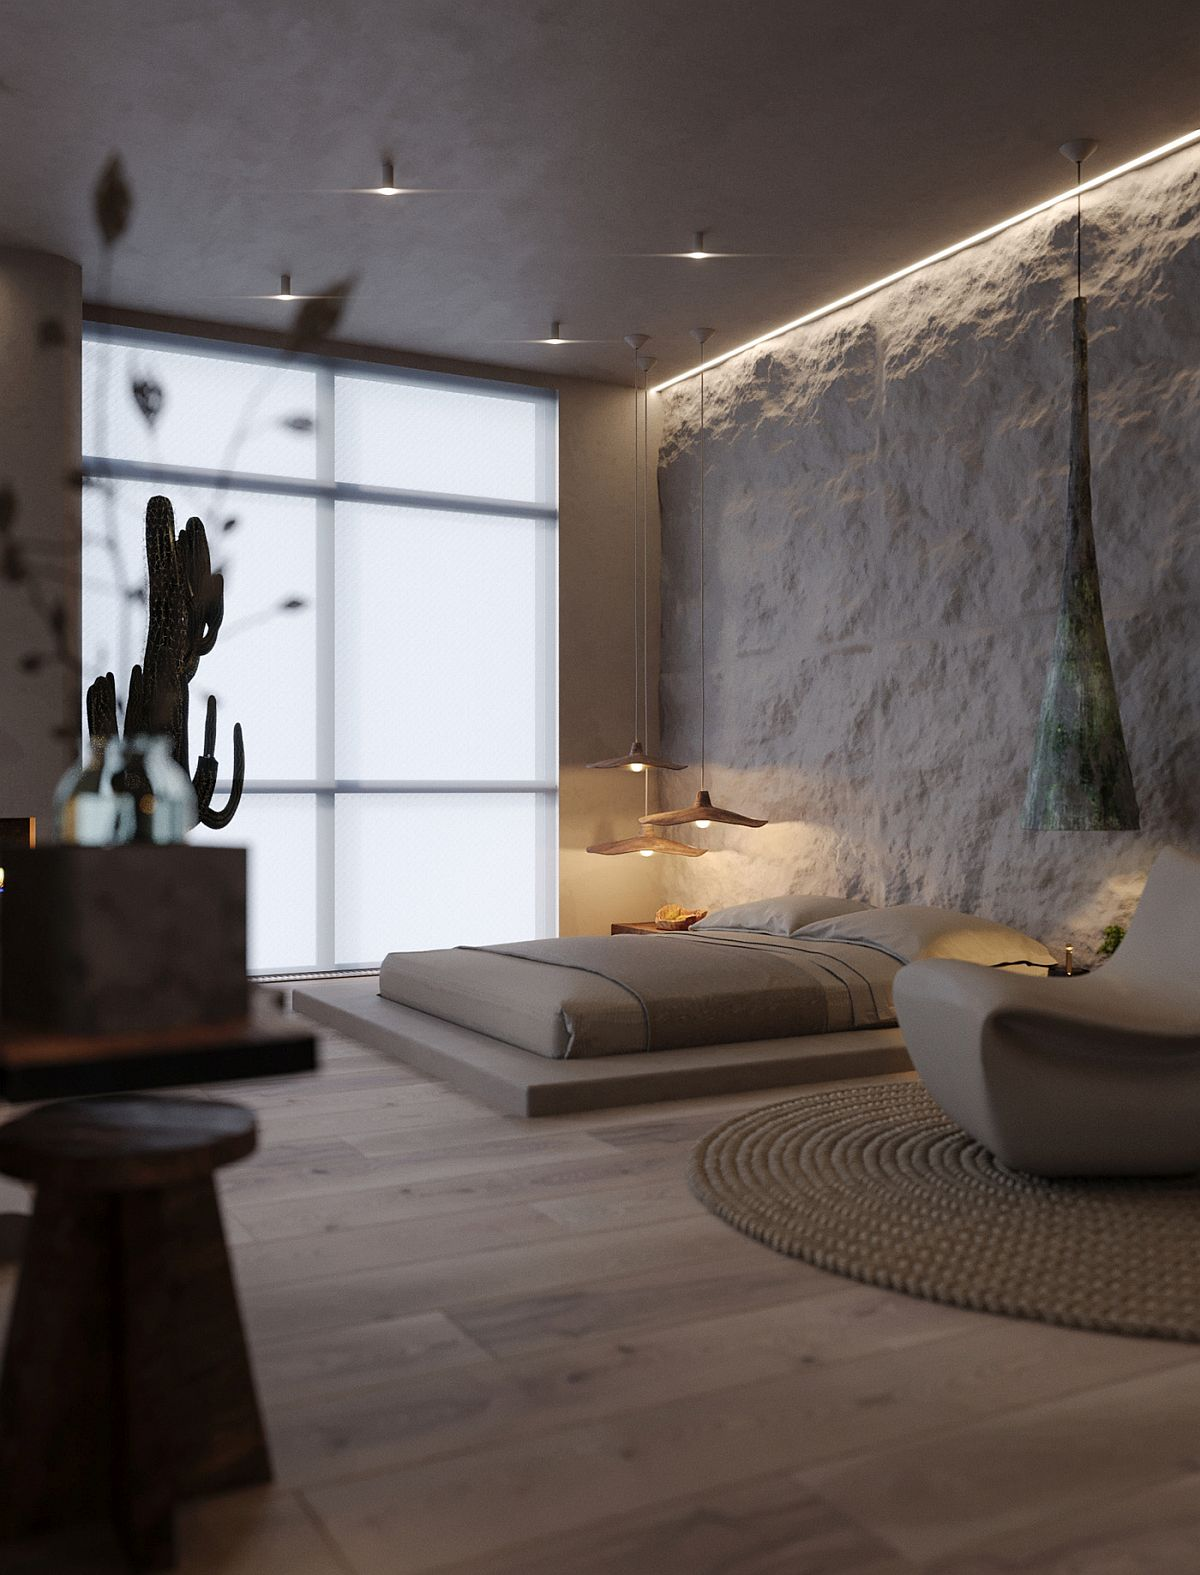 Different finishes and materials laced with modernity give the apartment a modern rustic appeal